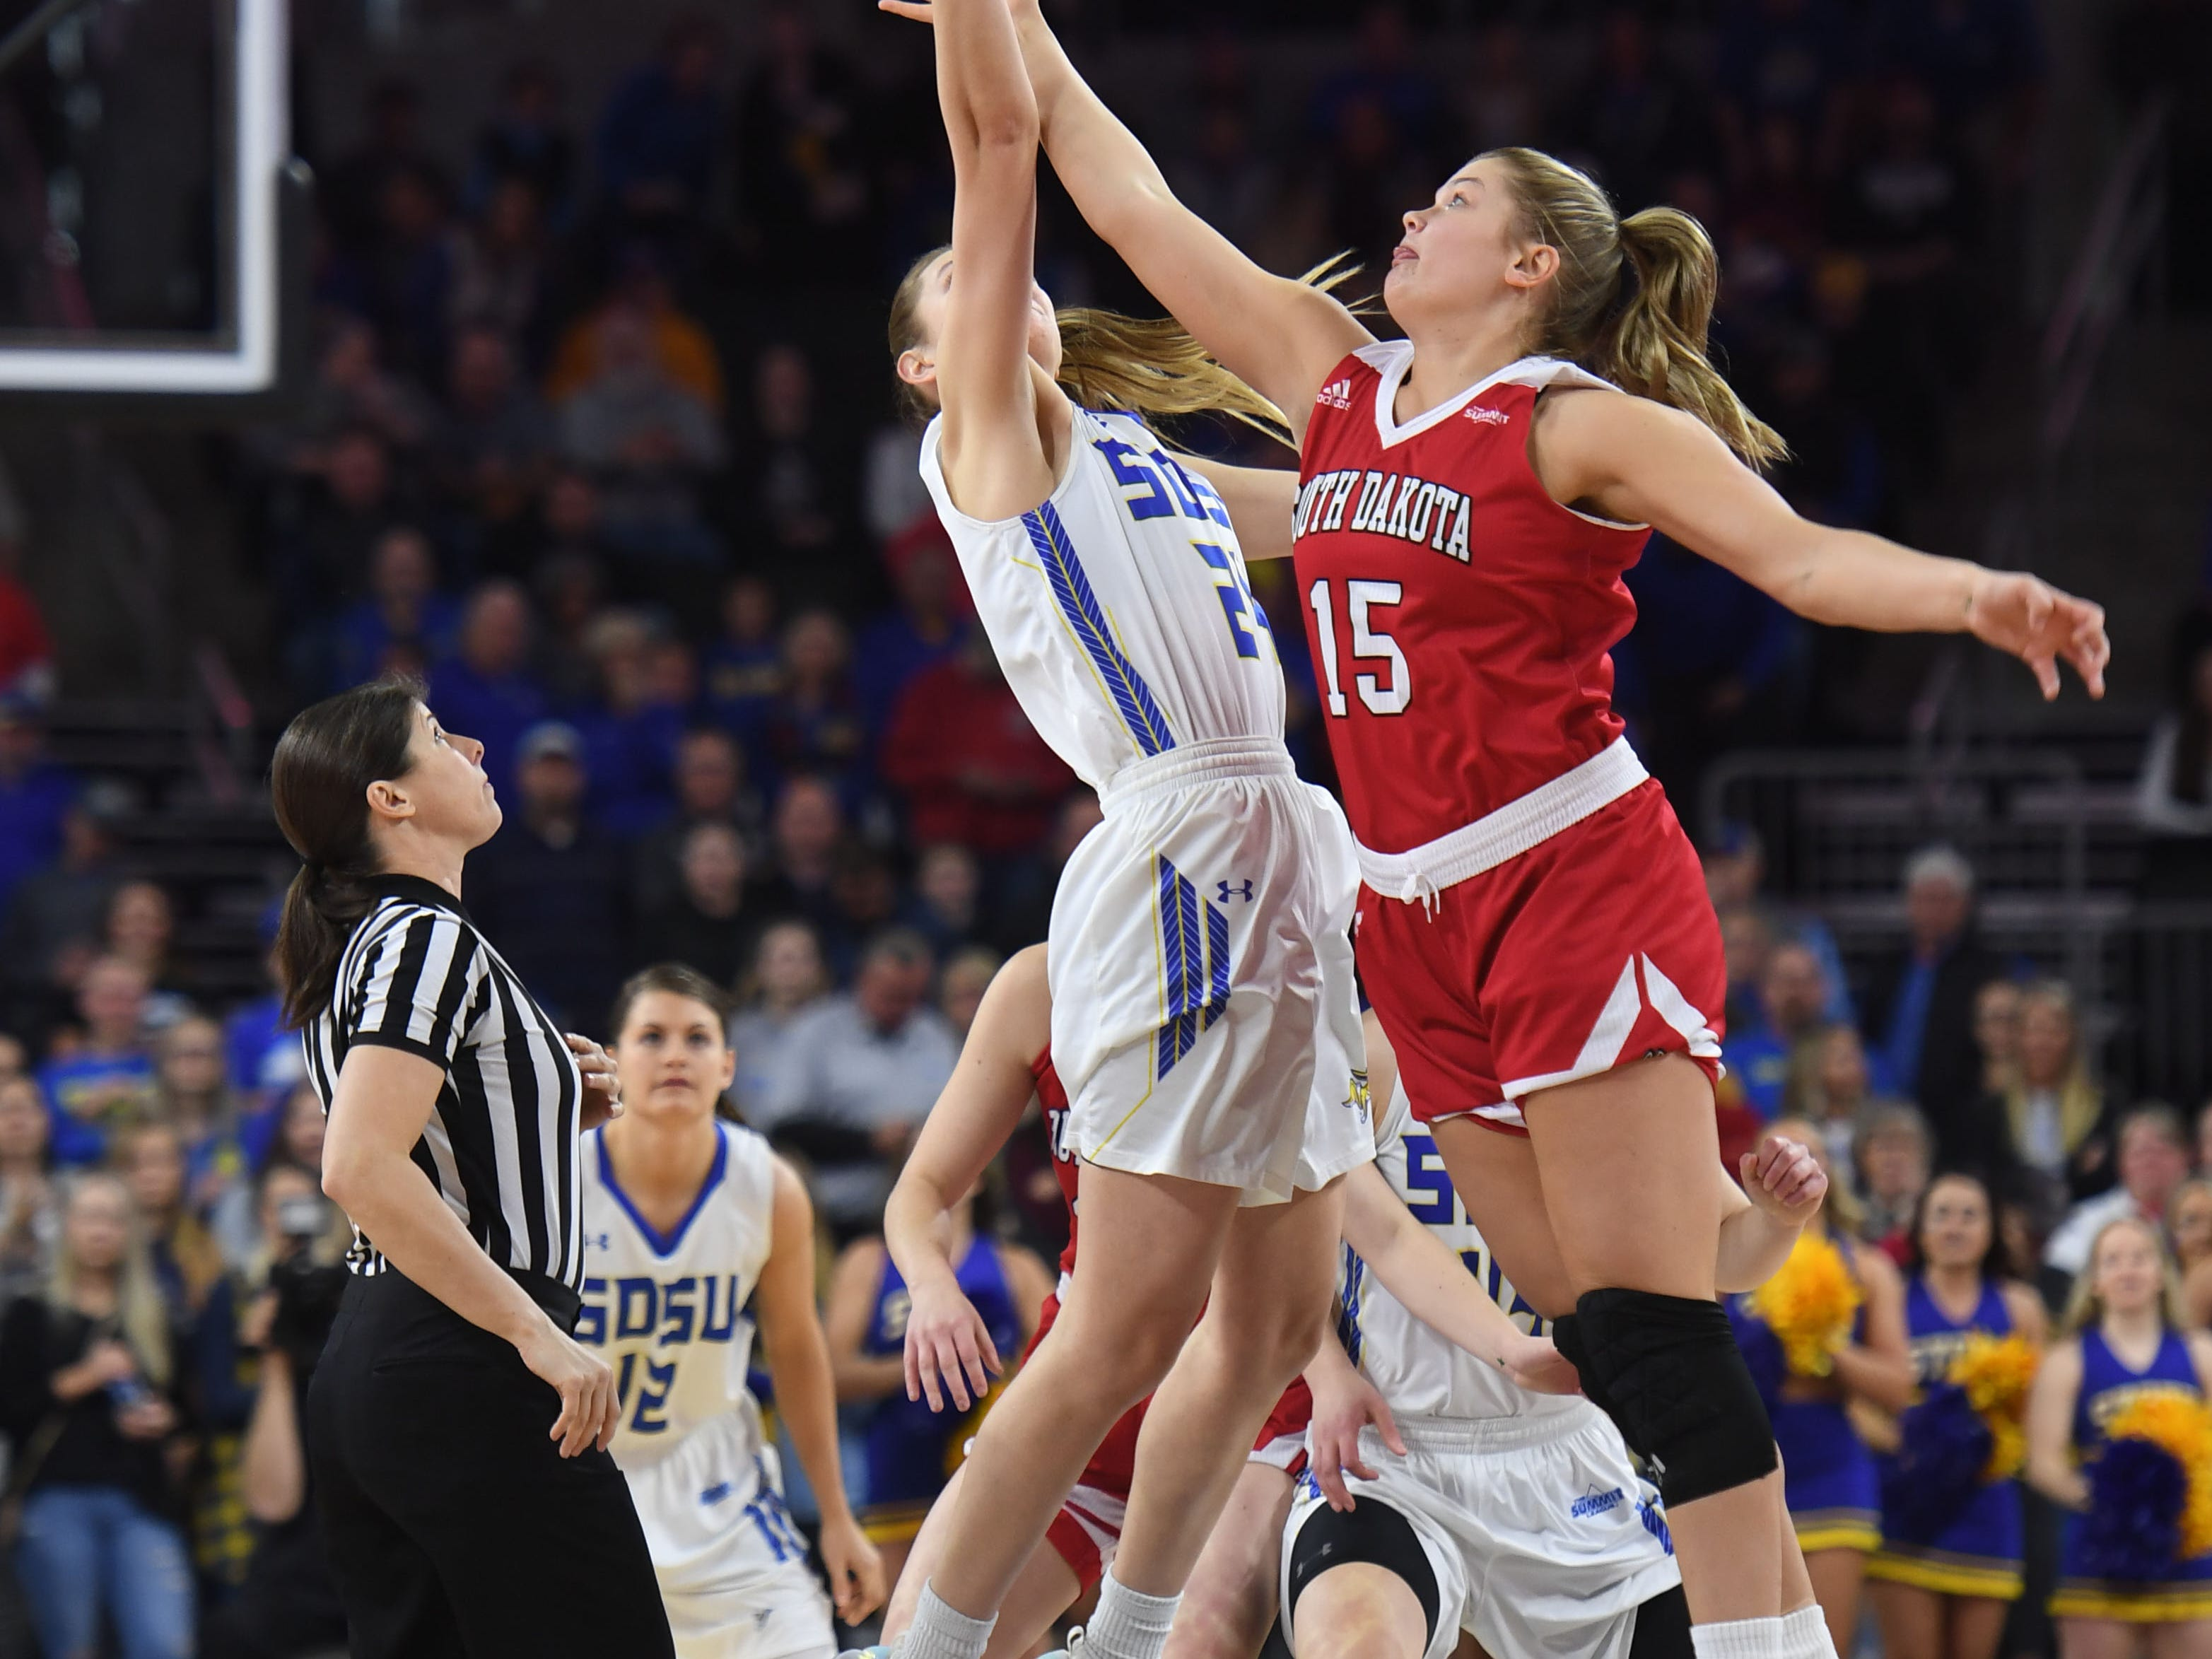 SDSU's Tagyn Larson and USD's Taylor Frederick tip off Tuesday, March 12, in the Summit League women's championship at the Denny Sanford Premier Center in Sioux Falls.